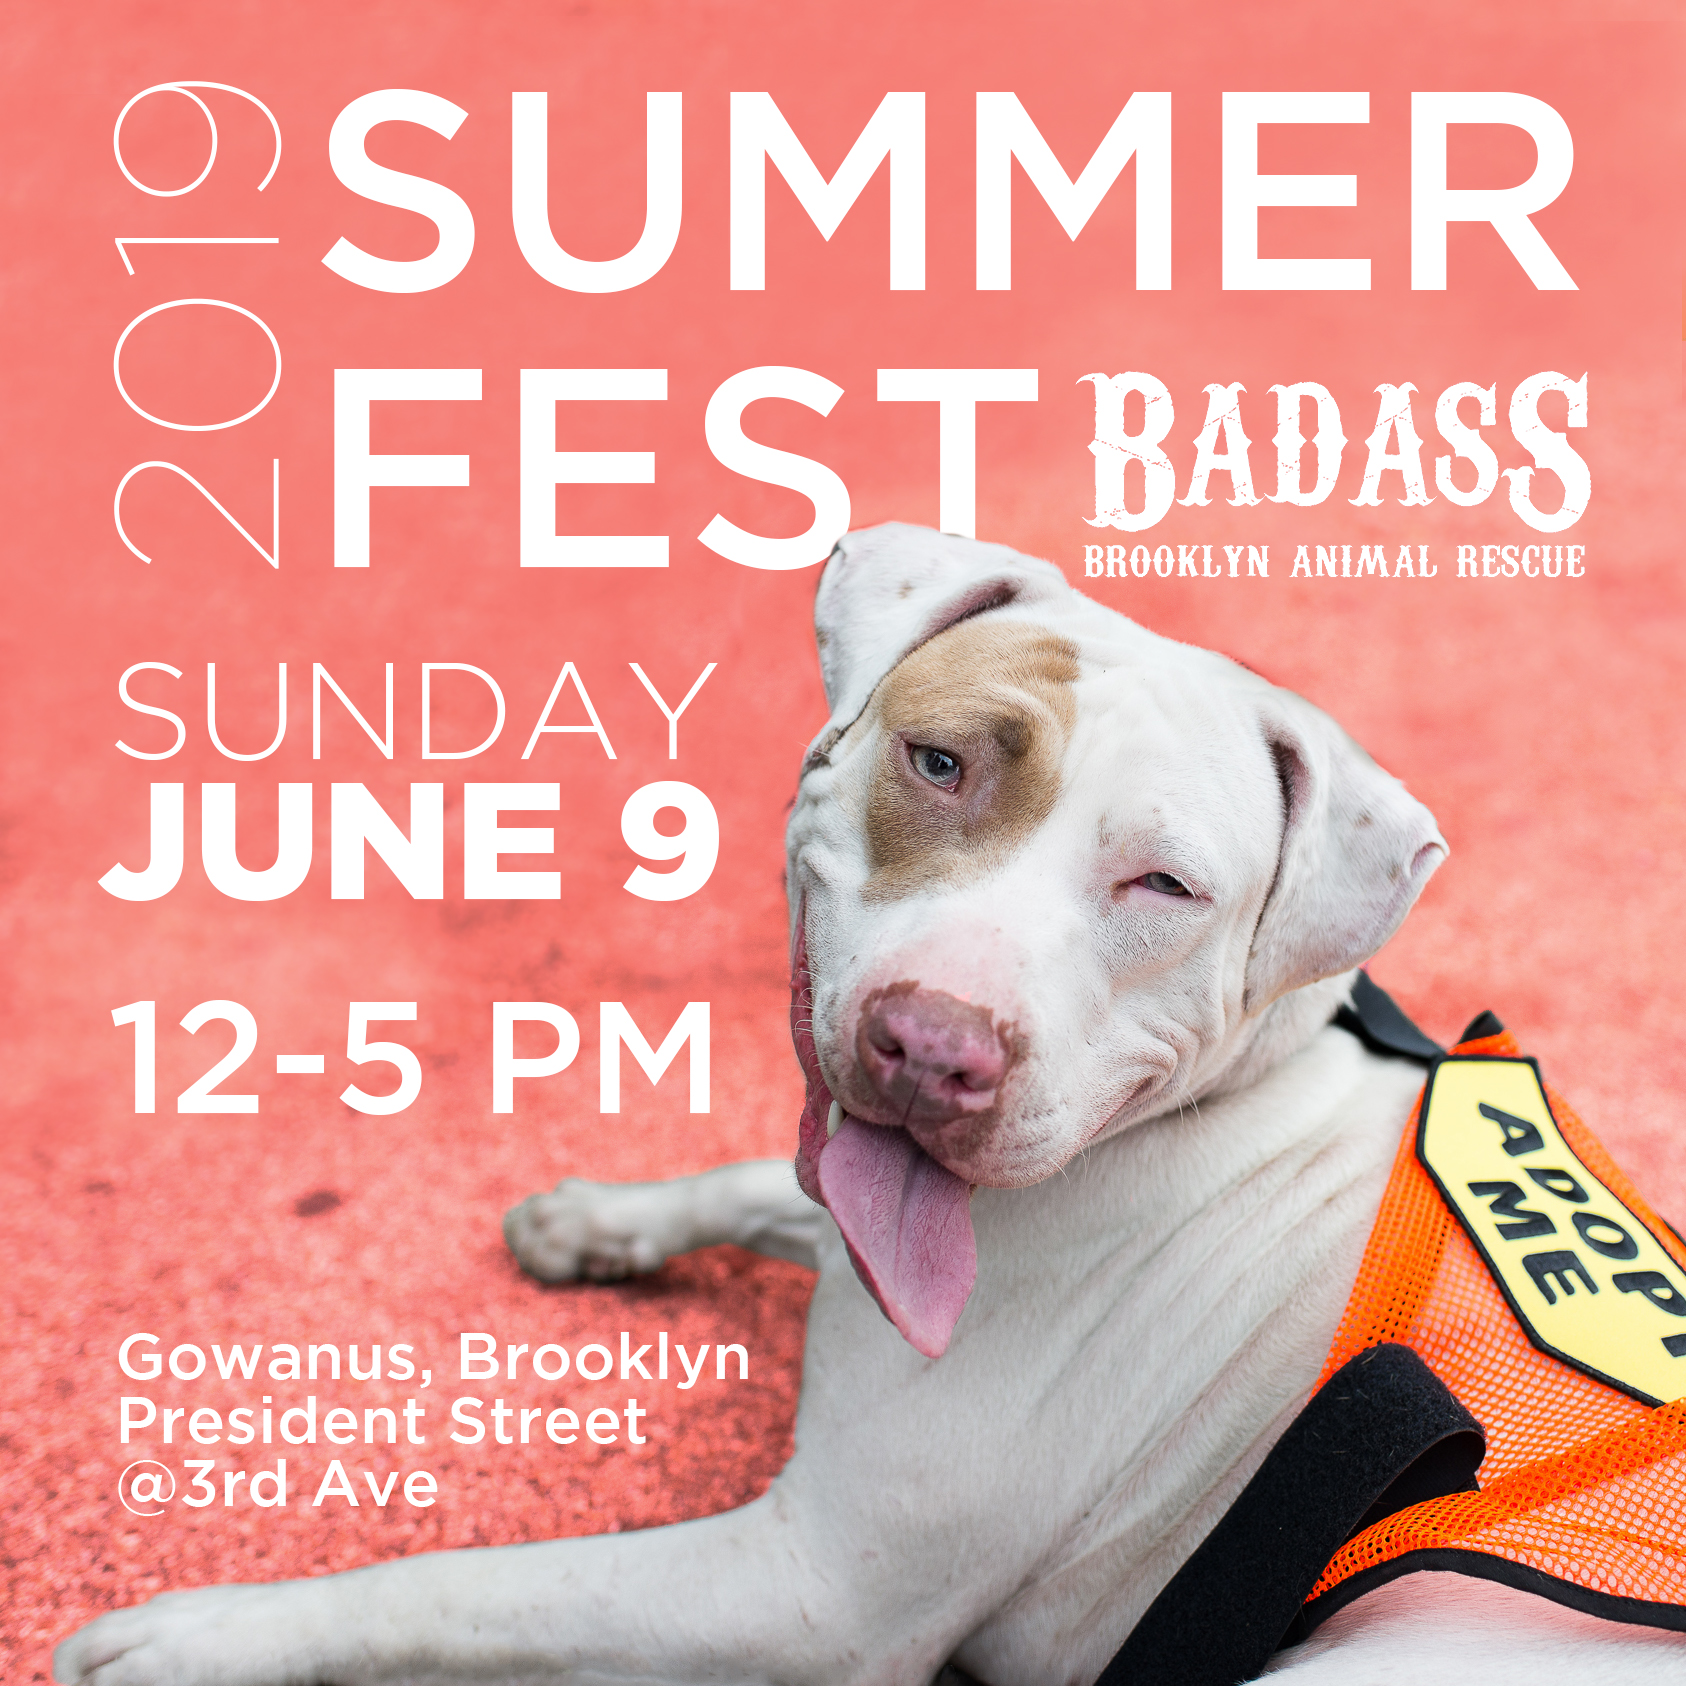 The 7th Annual Badass Brooklyn Summer Fest is upon us and this year will be better than ever! This FREE, large-scale street festival featuring Brooklyn-based artisanal merchants, local food vendors, craft beer, dog friendly activities, a Badass adoption event and a Badass raffle cannot be missed! Welcoming hundreds of dog lovers and their pups, the Summer Fest is our second largest event of the year and provides Badass Brooklyn Animal Rescue with the support we need to continue the important work of rescuing dogs from high kill shelters in the mostly rural South. RAIN OR SHINE!  HIGHLIGHTS INCLUDE:  - 1:30-3:30 Badass Brooklyn Animal Rescue adoption event - Doggie Kissing Booth (with our favorite Badass pups & alumni) - Dog Reunions and Shelter Meetups - Dog Food tasting with  Evermore Pet Food   - Badass Vendors including  Pierless Fish Corp ,  Malz Palz ,  Wild One ,  Pawmiscous  - Agility Course with  Dogboy NYC  - Poochinins by  Shake Shack    - Ask the Vet with  All Creatures Veterinary Hospital  - Pet Portraits by  Andrea Cáceres  - Tacos by  Tacos Cholula   As if that's not enough to get you there, take a shot at winning some of these amazing RAFFLE items including gift certificates and goods from:  Nitehawk Cinema - Prospect Park ,  The William Vale ,  CarrieDraws ,  CityWell Brooklyn ,  Barry's Bootcamp New York City ,  Cyc Fitness UES ,  Dirty Precious ,  Pure Barre ,  HouseBroken, Inc. , incredible tickets to the Rolling Stones, and many more!!  Special thanks to our Rescue Hero Sponsors  Veterinary Emergency and Referral Group  and  NYC Pooch , Top Dog Sponsors  Eva's Play Pups  and our partner  Canal Bar . Drink specials provided by  Tito's Handmade Vodka  and  Jack's Abby Craft Lagers .    To purchase special-priced raffle and beer tickets,  please click here . You'll pick up your tickets at the Badass information booth at the top of the street.